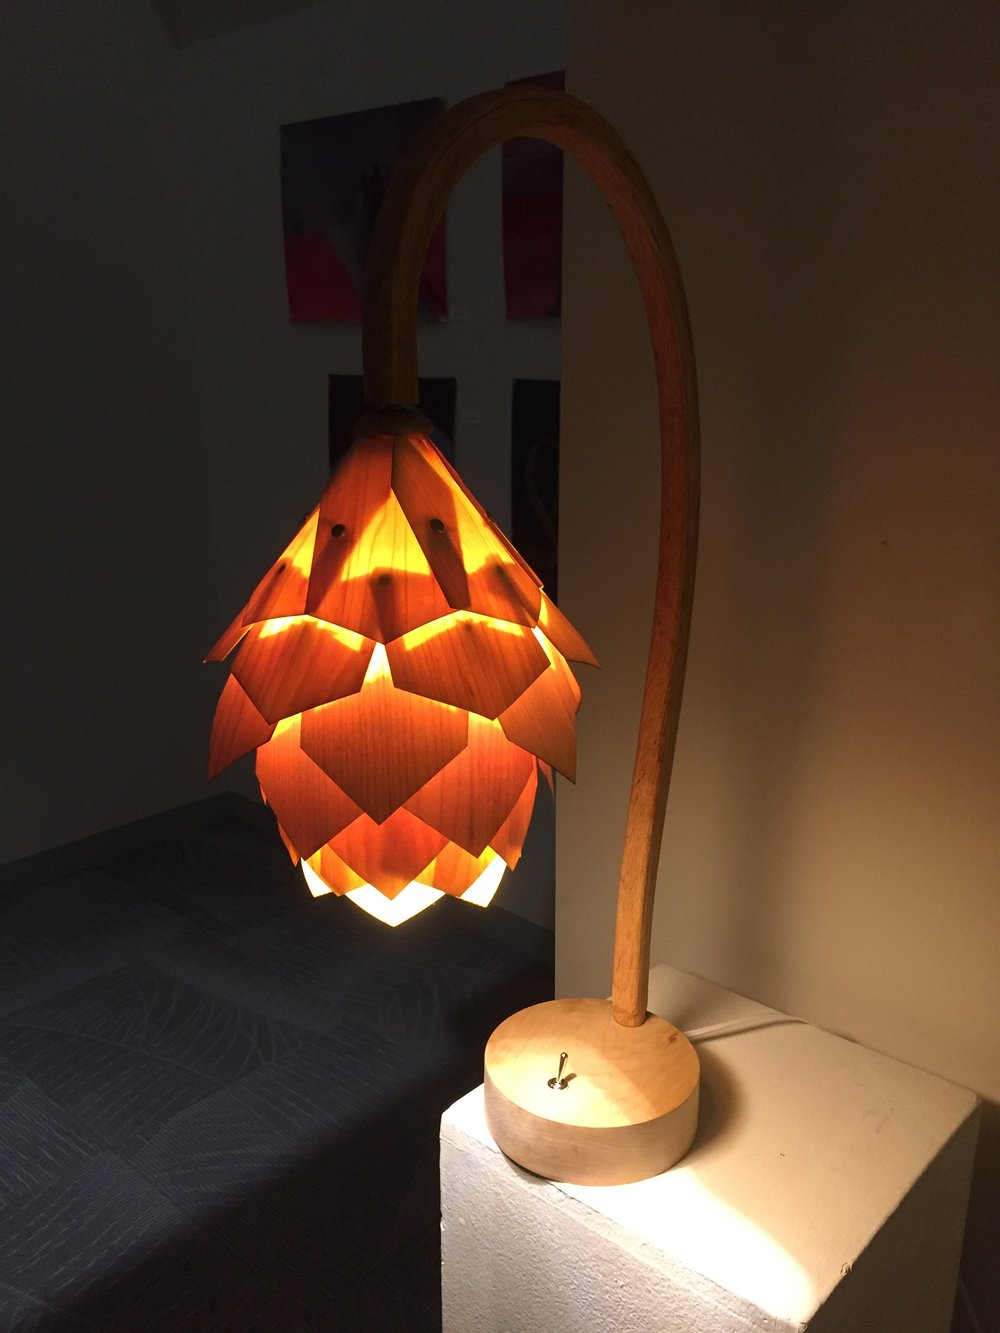 Pinecone Lamp (P2) (Woodworking) - Danny Noenickx